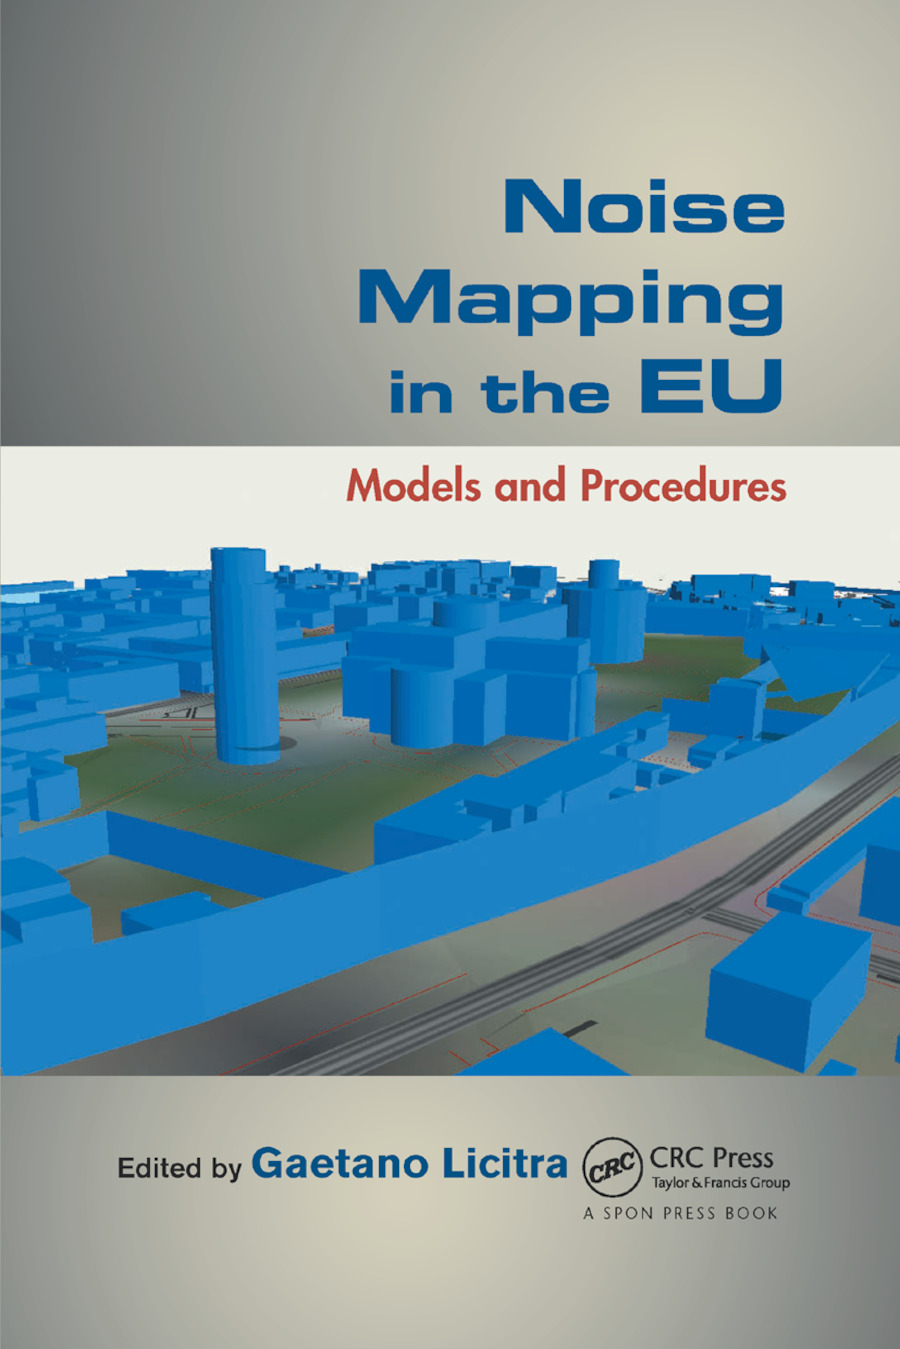 Noise Mapping in the EU